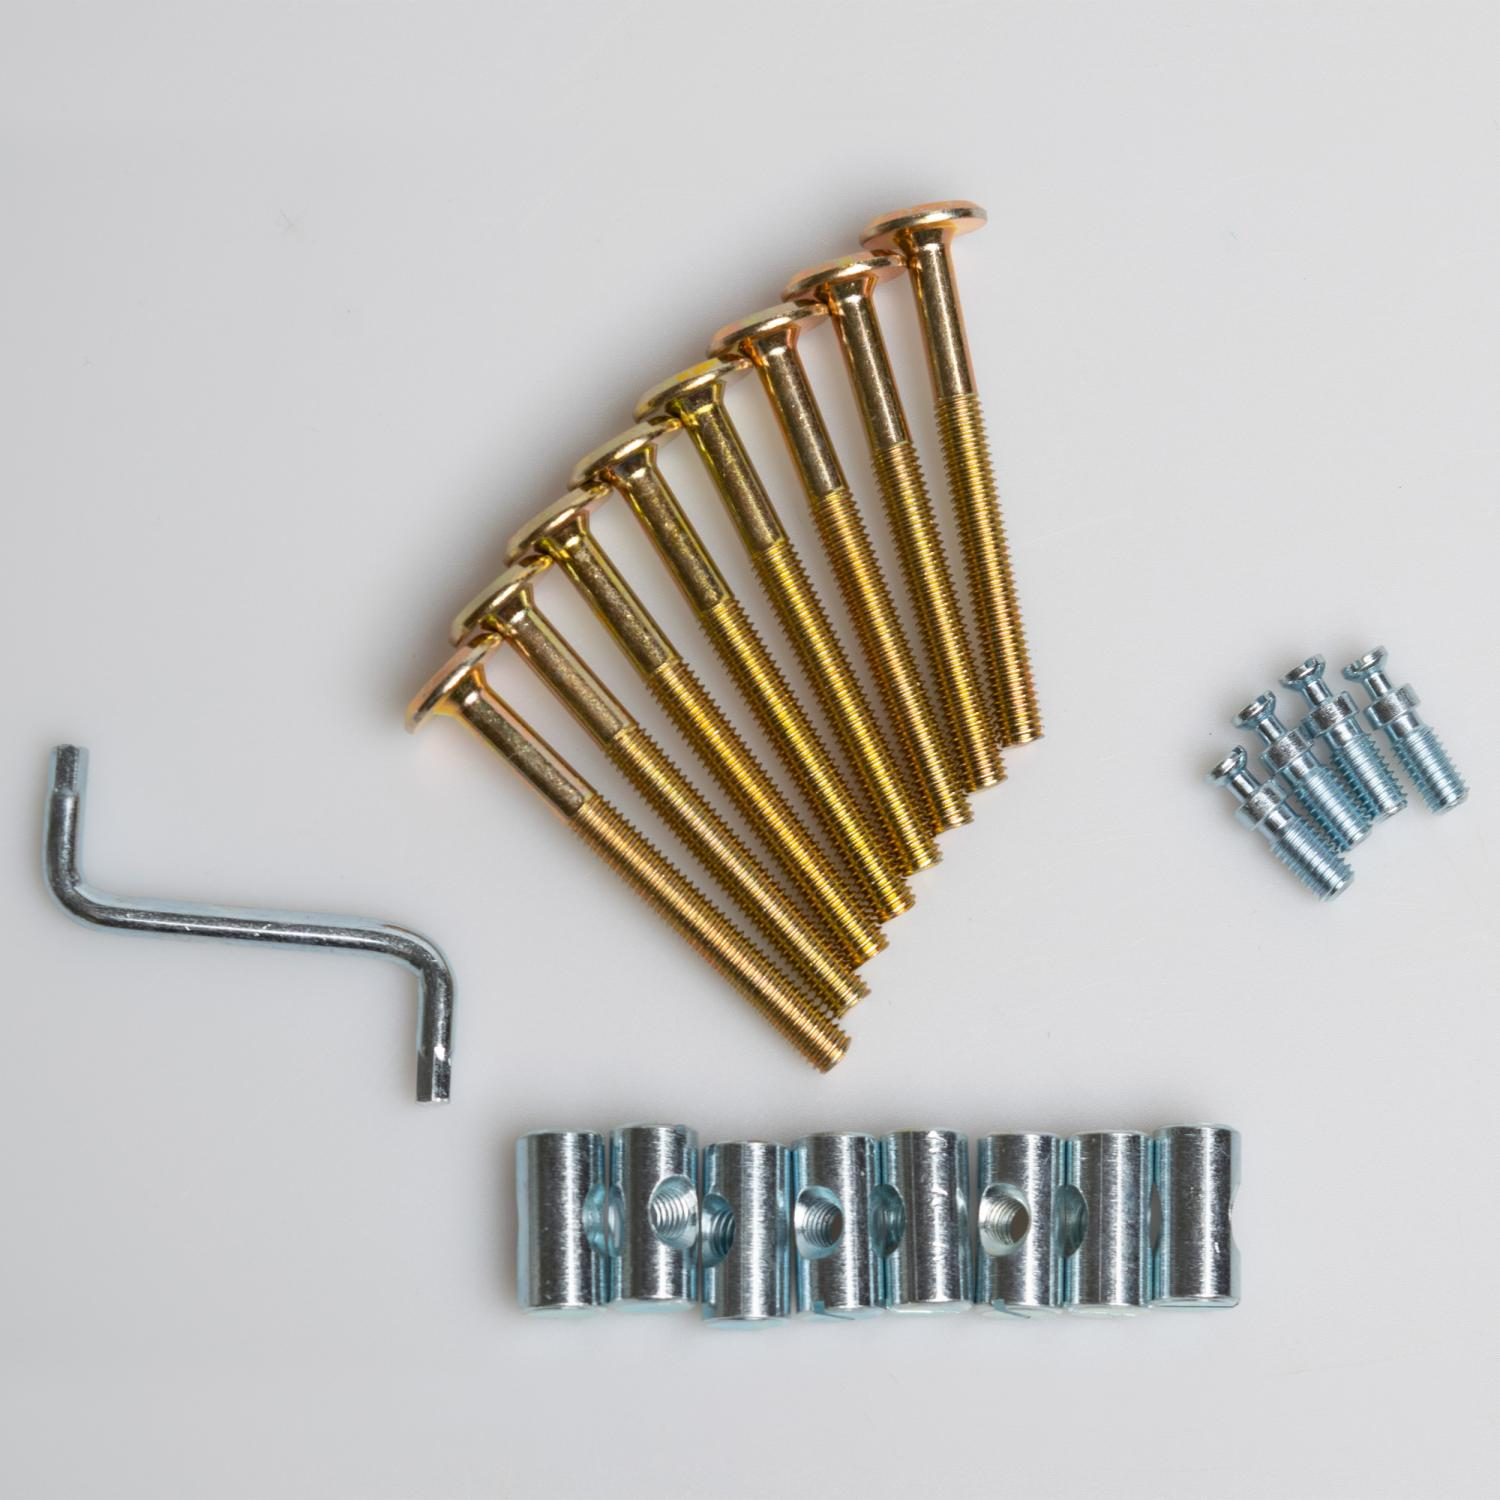 Screw set Linda cot | Troll